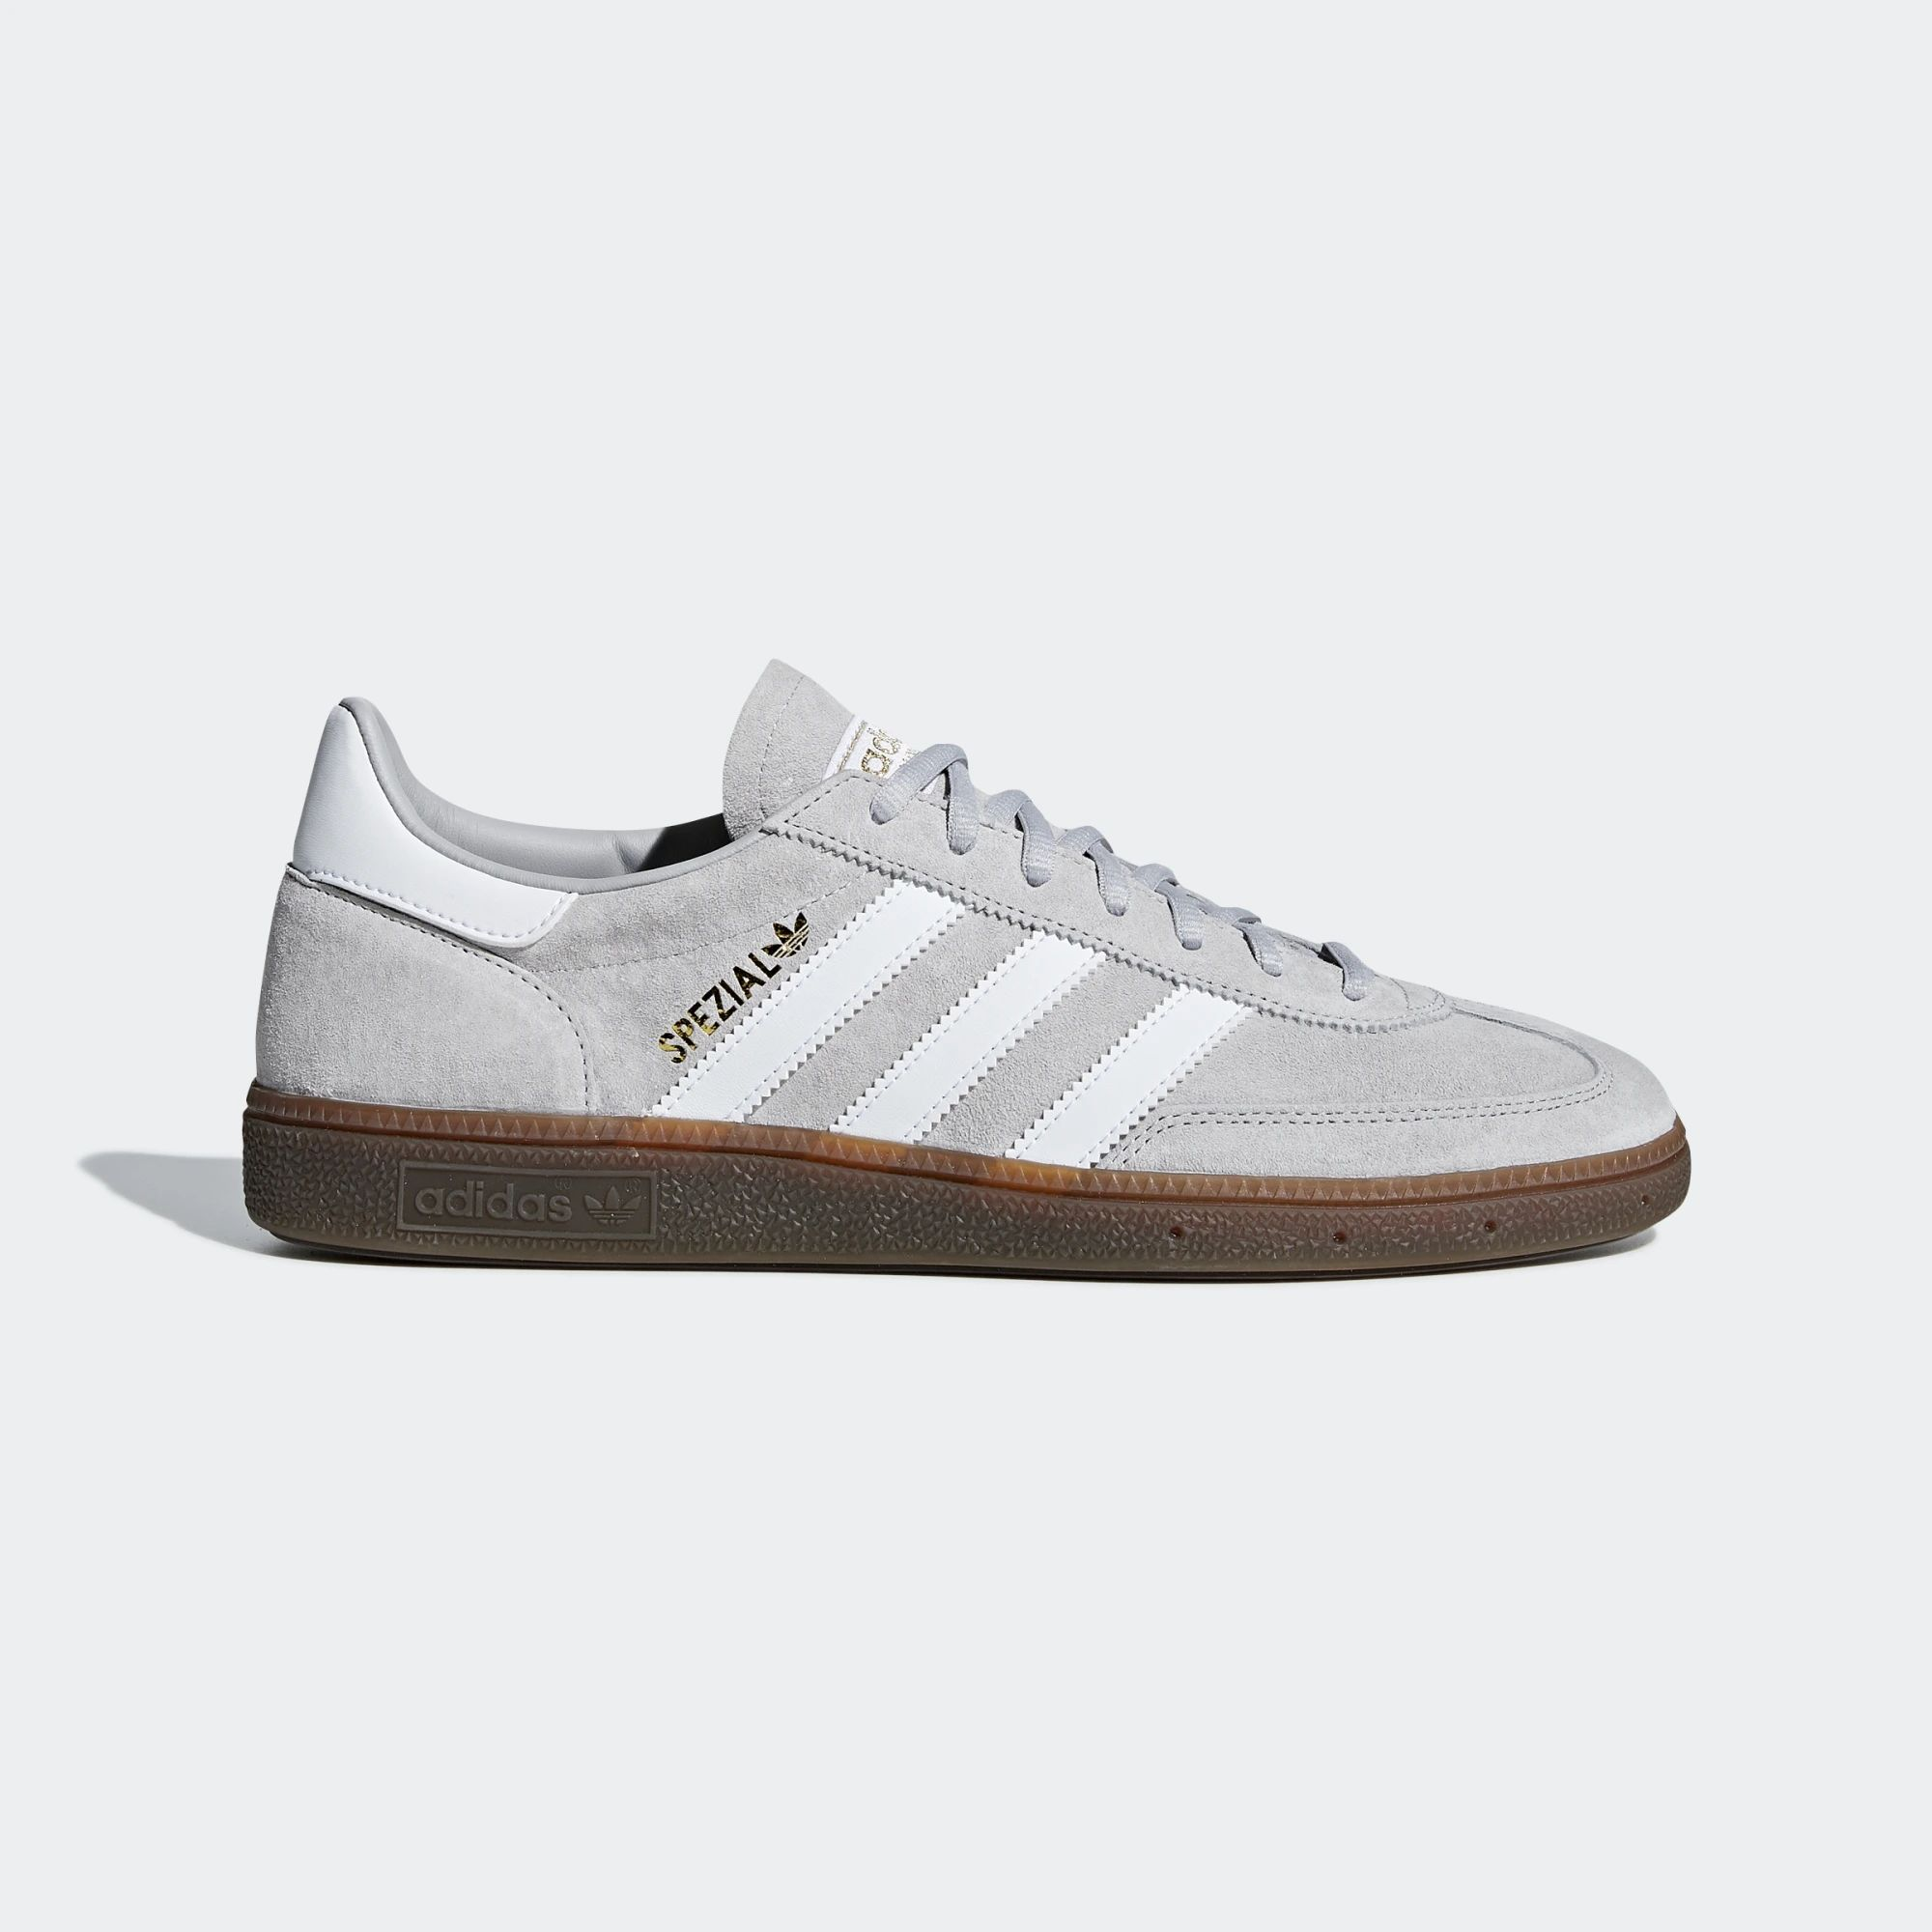 Adidas Handball Spezial Shoes Grey Two Ftwr White Gum